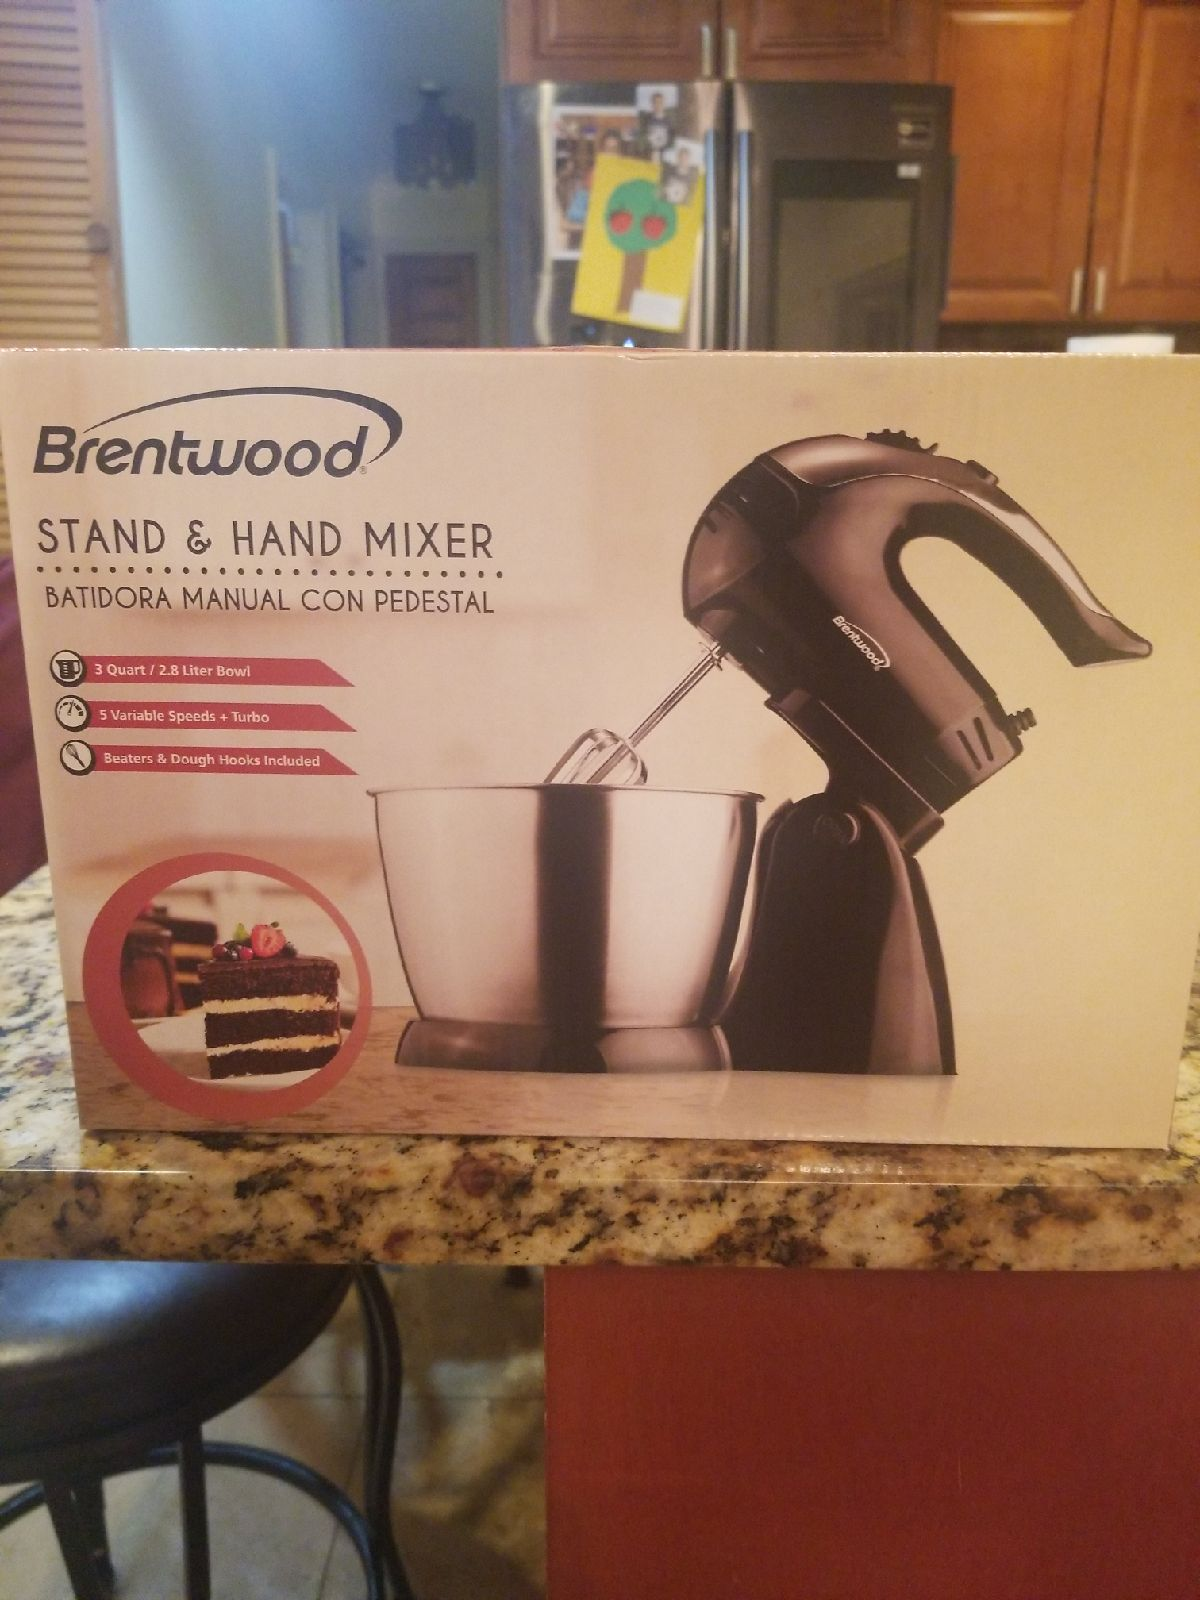 Brentwood stand & hand mixer